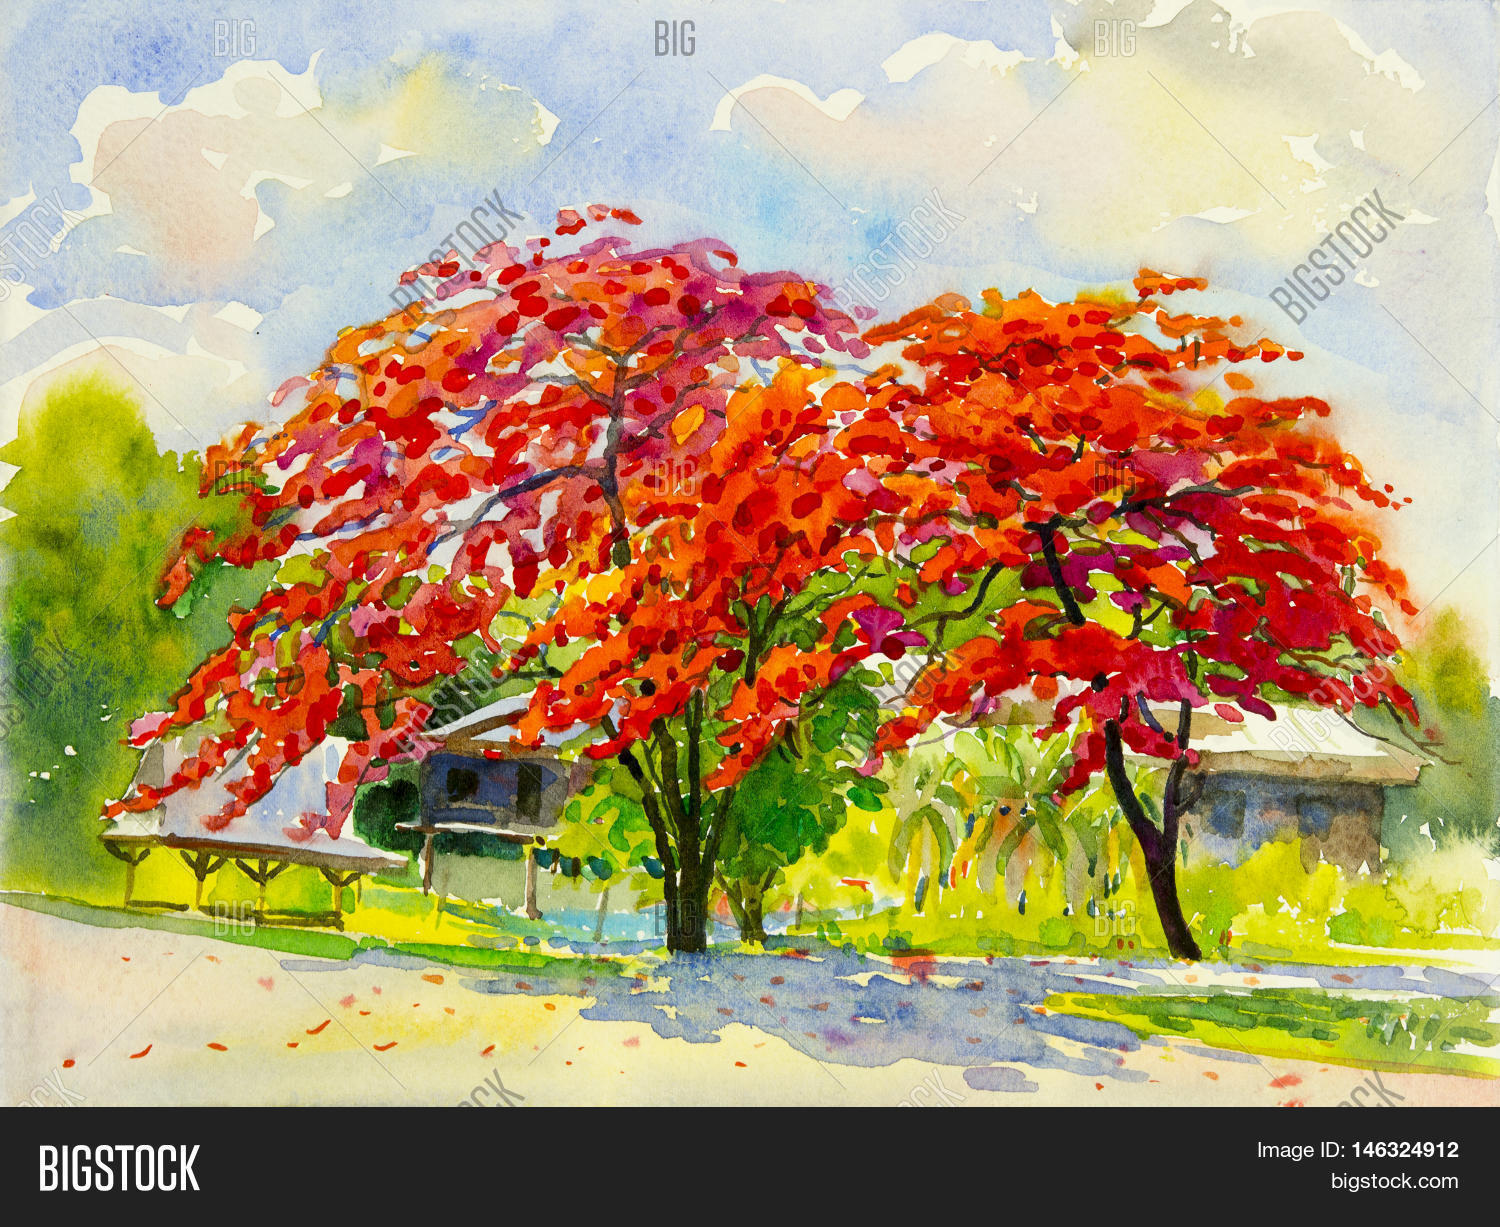 Watercolor Landscape Image & Photo (Free Trial) | Bigstock